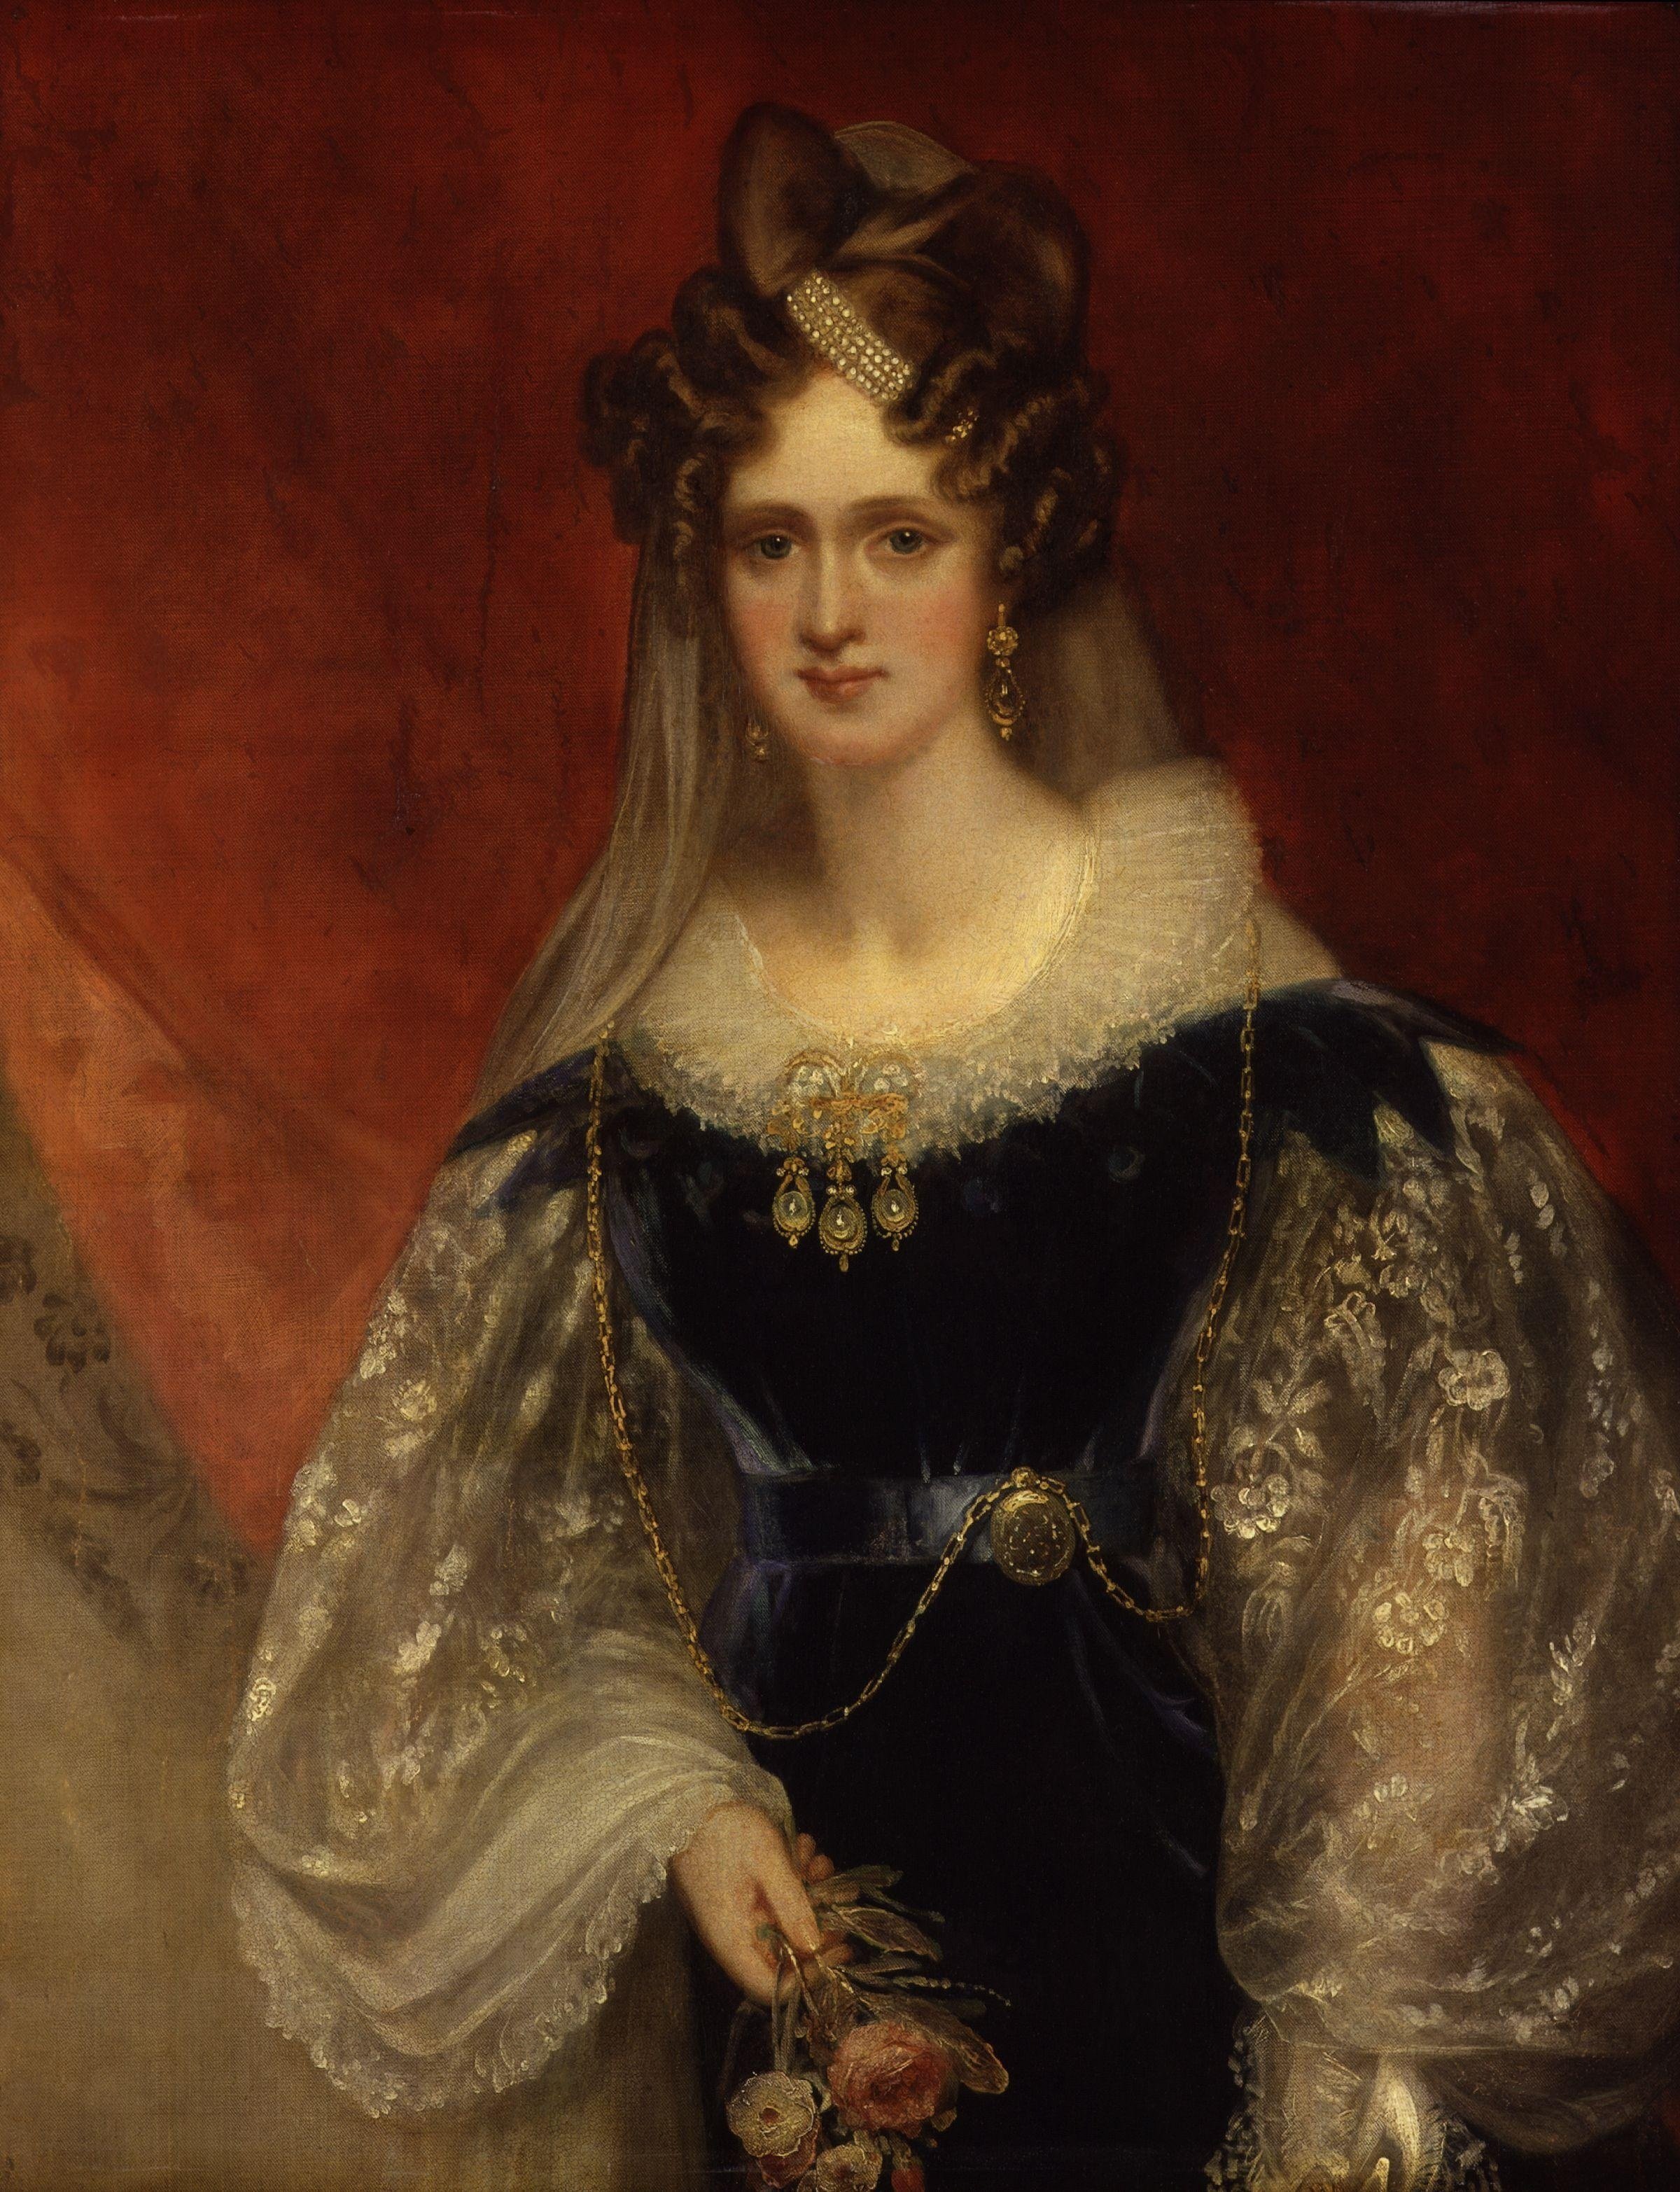 Adelaide amelia louisa theresa caroline of saxe coburg meiningen sir william beechey